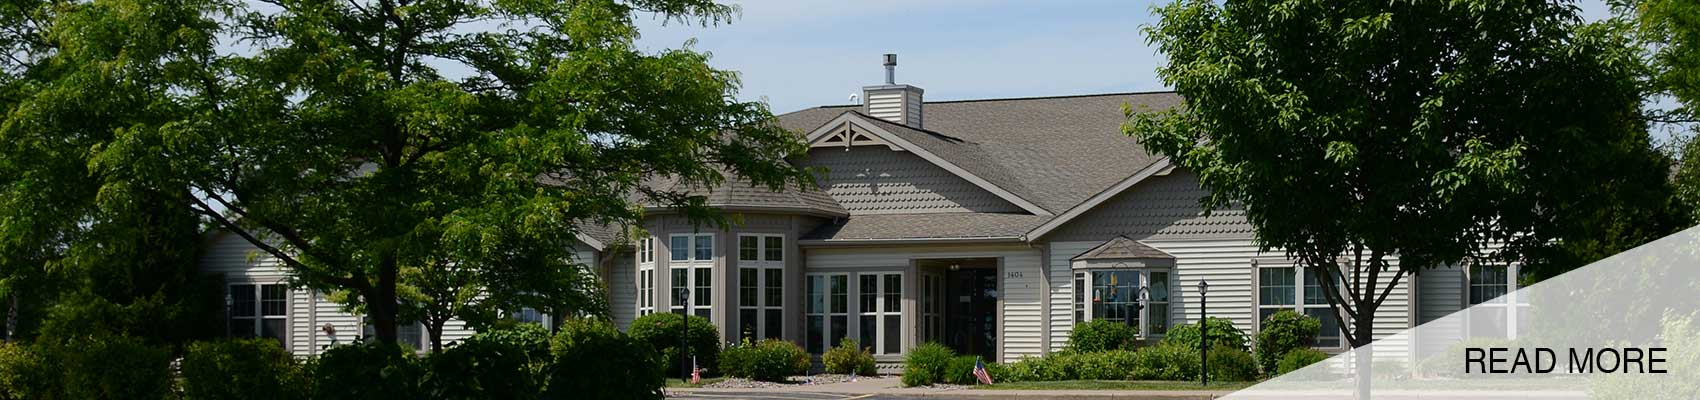 Copperleaf Senior Living   in Stevens Point, WI